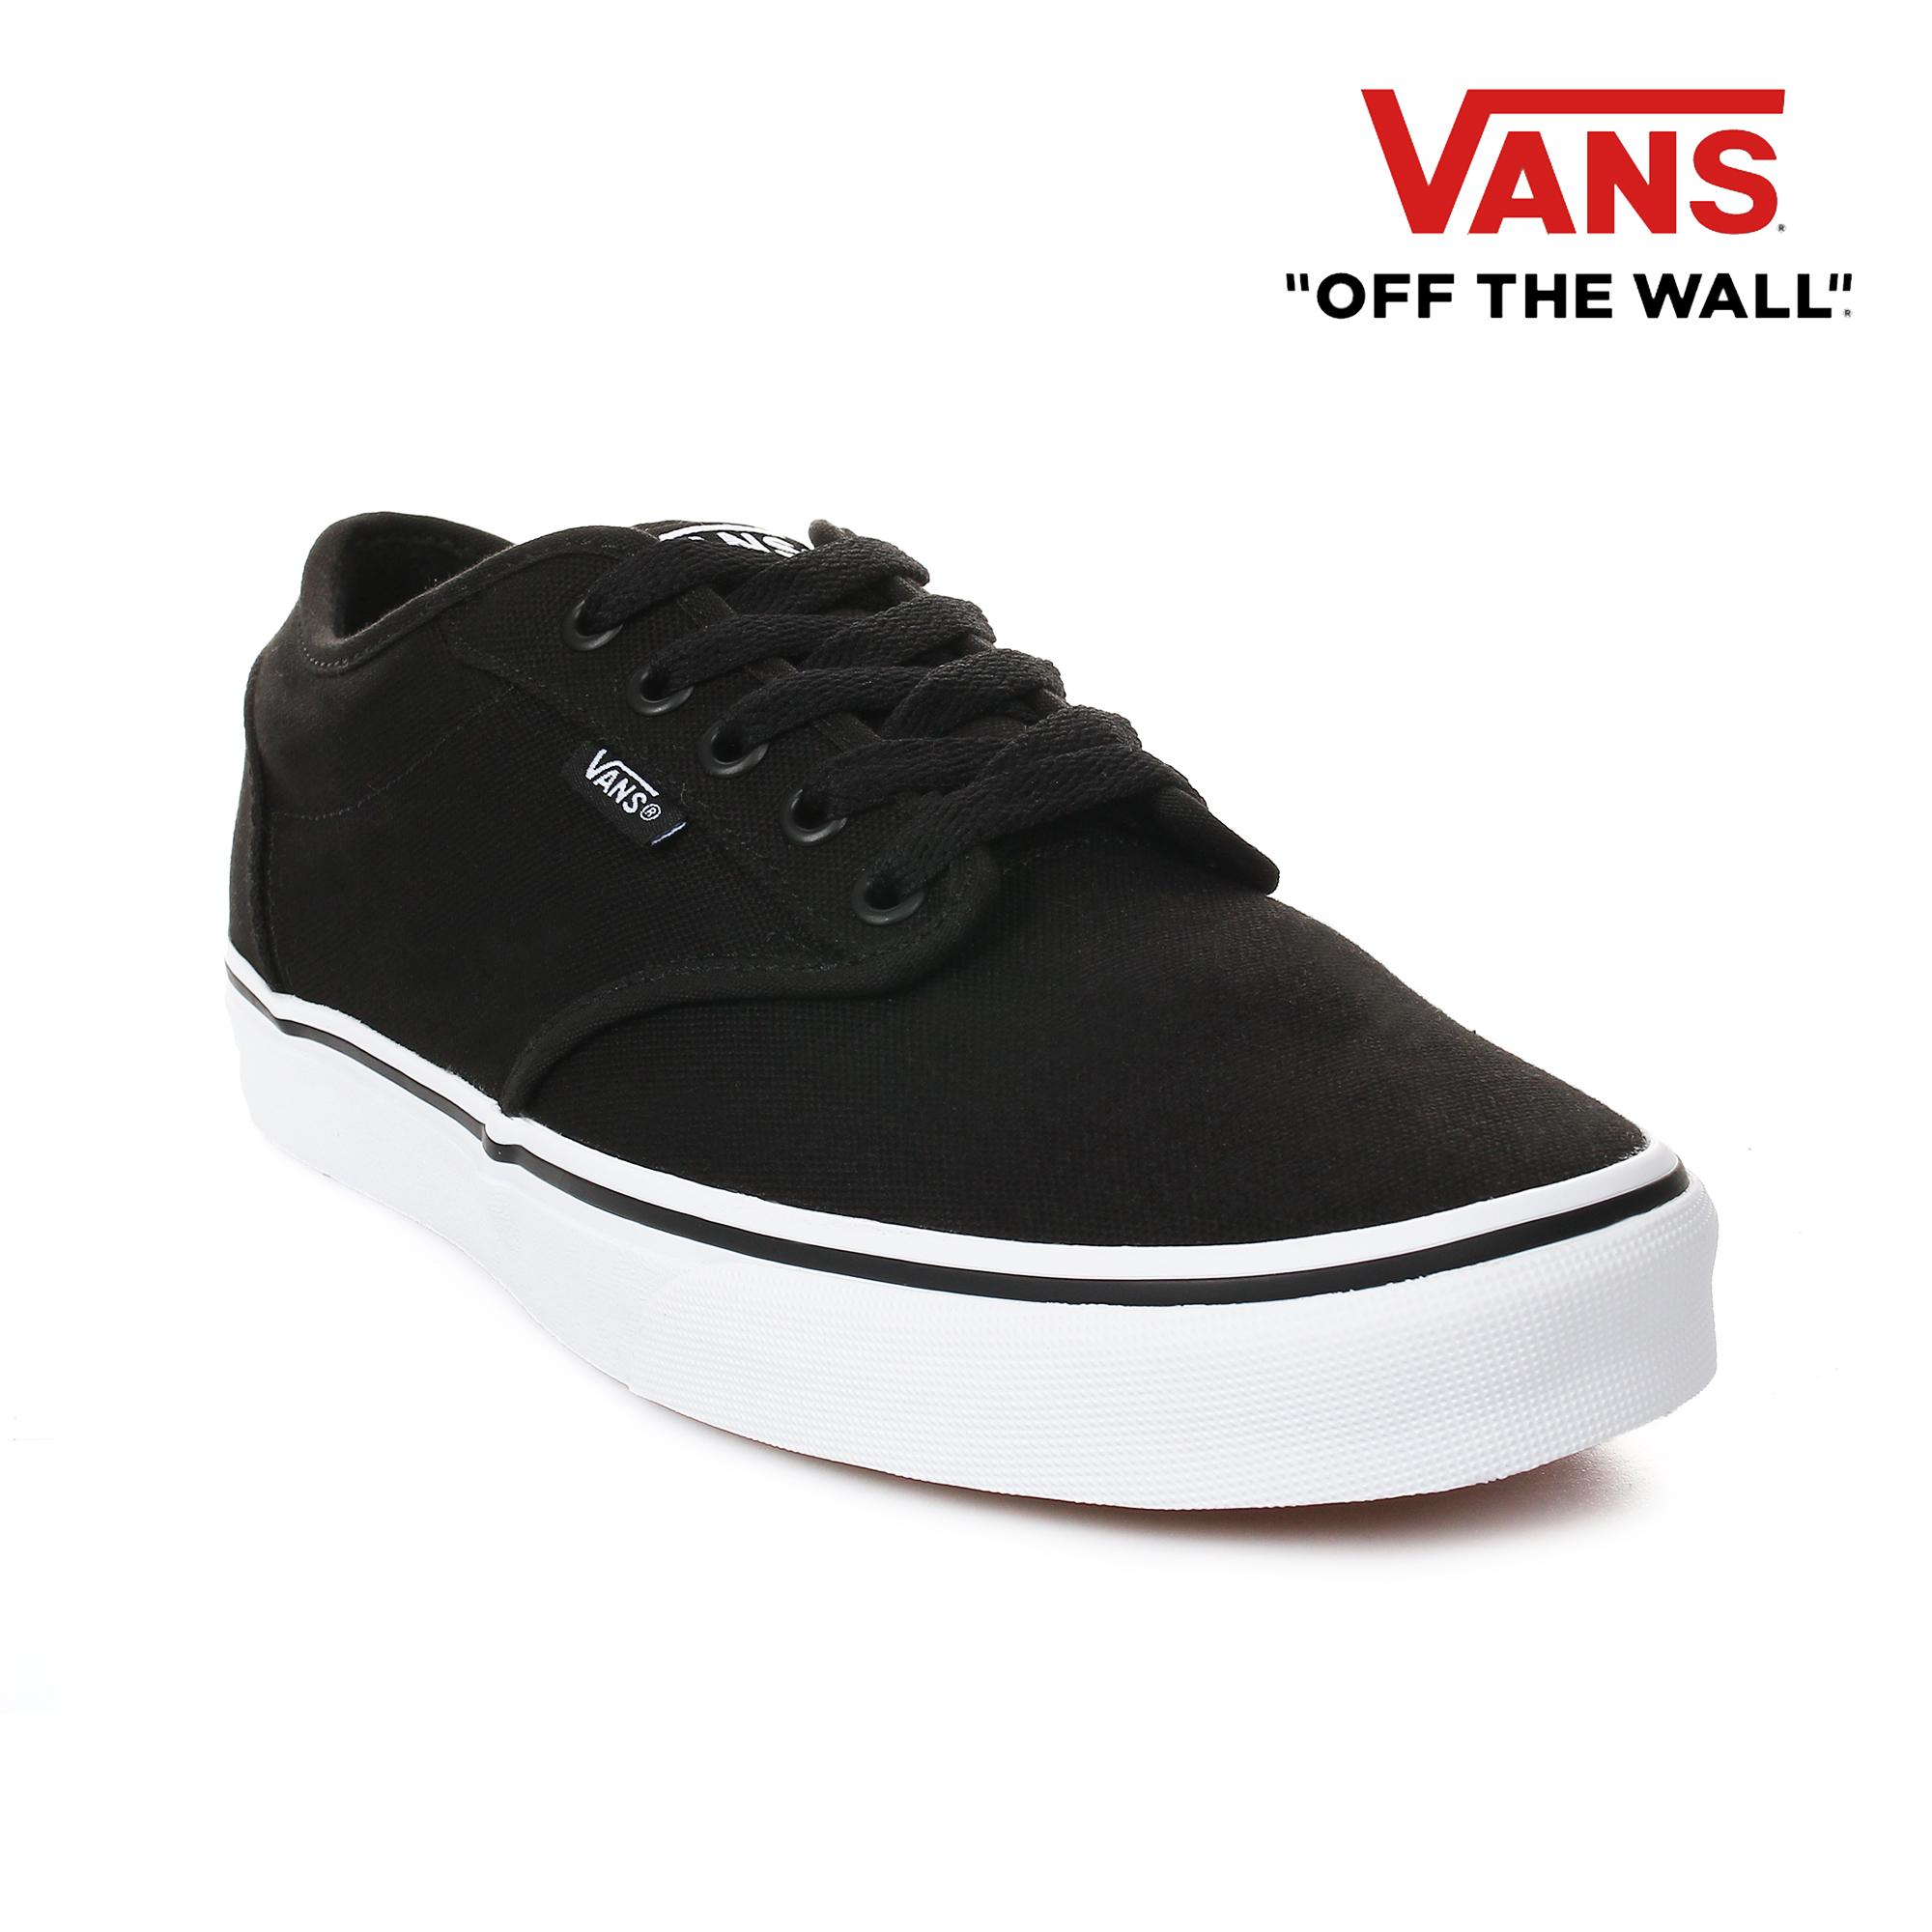 d623800b015 Vans Shoes for Men Philippines - Vans Men s Shoes for sale - prices ...